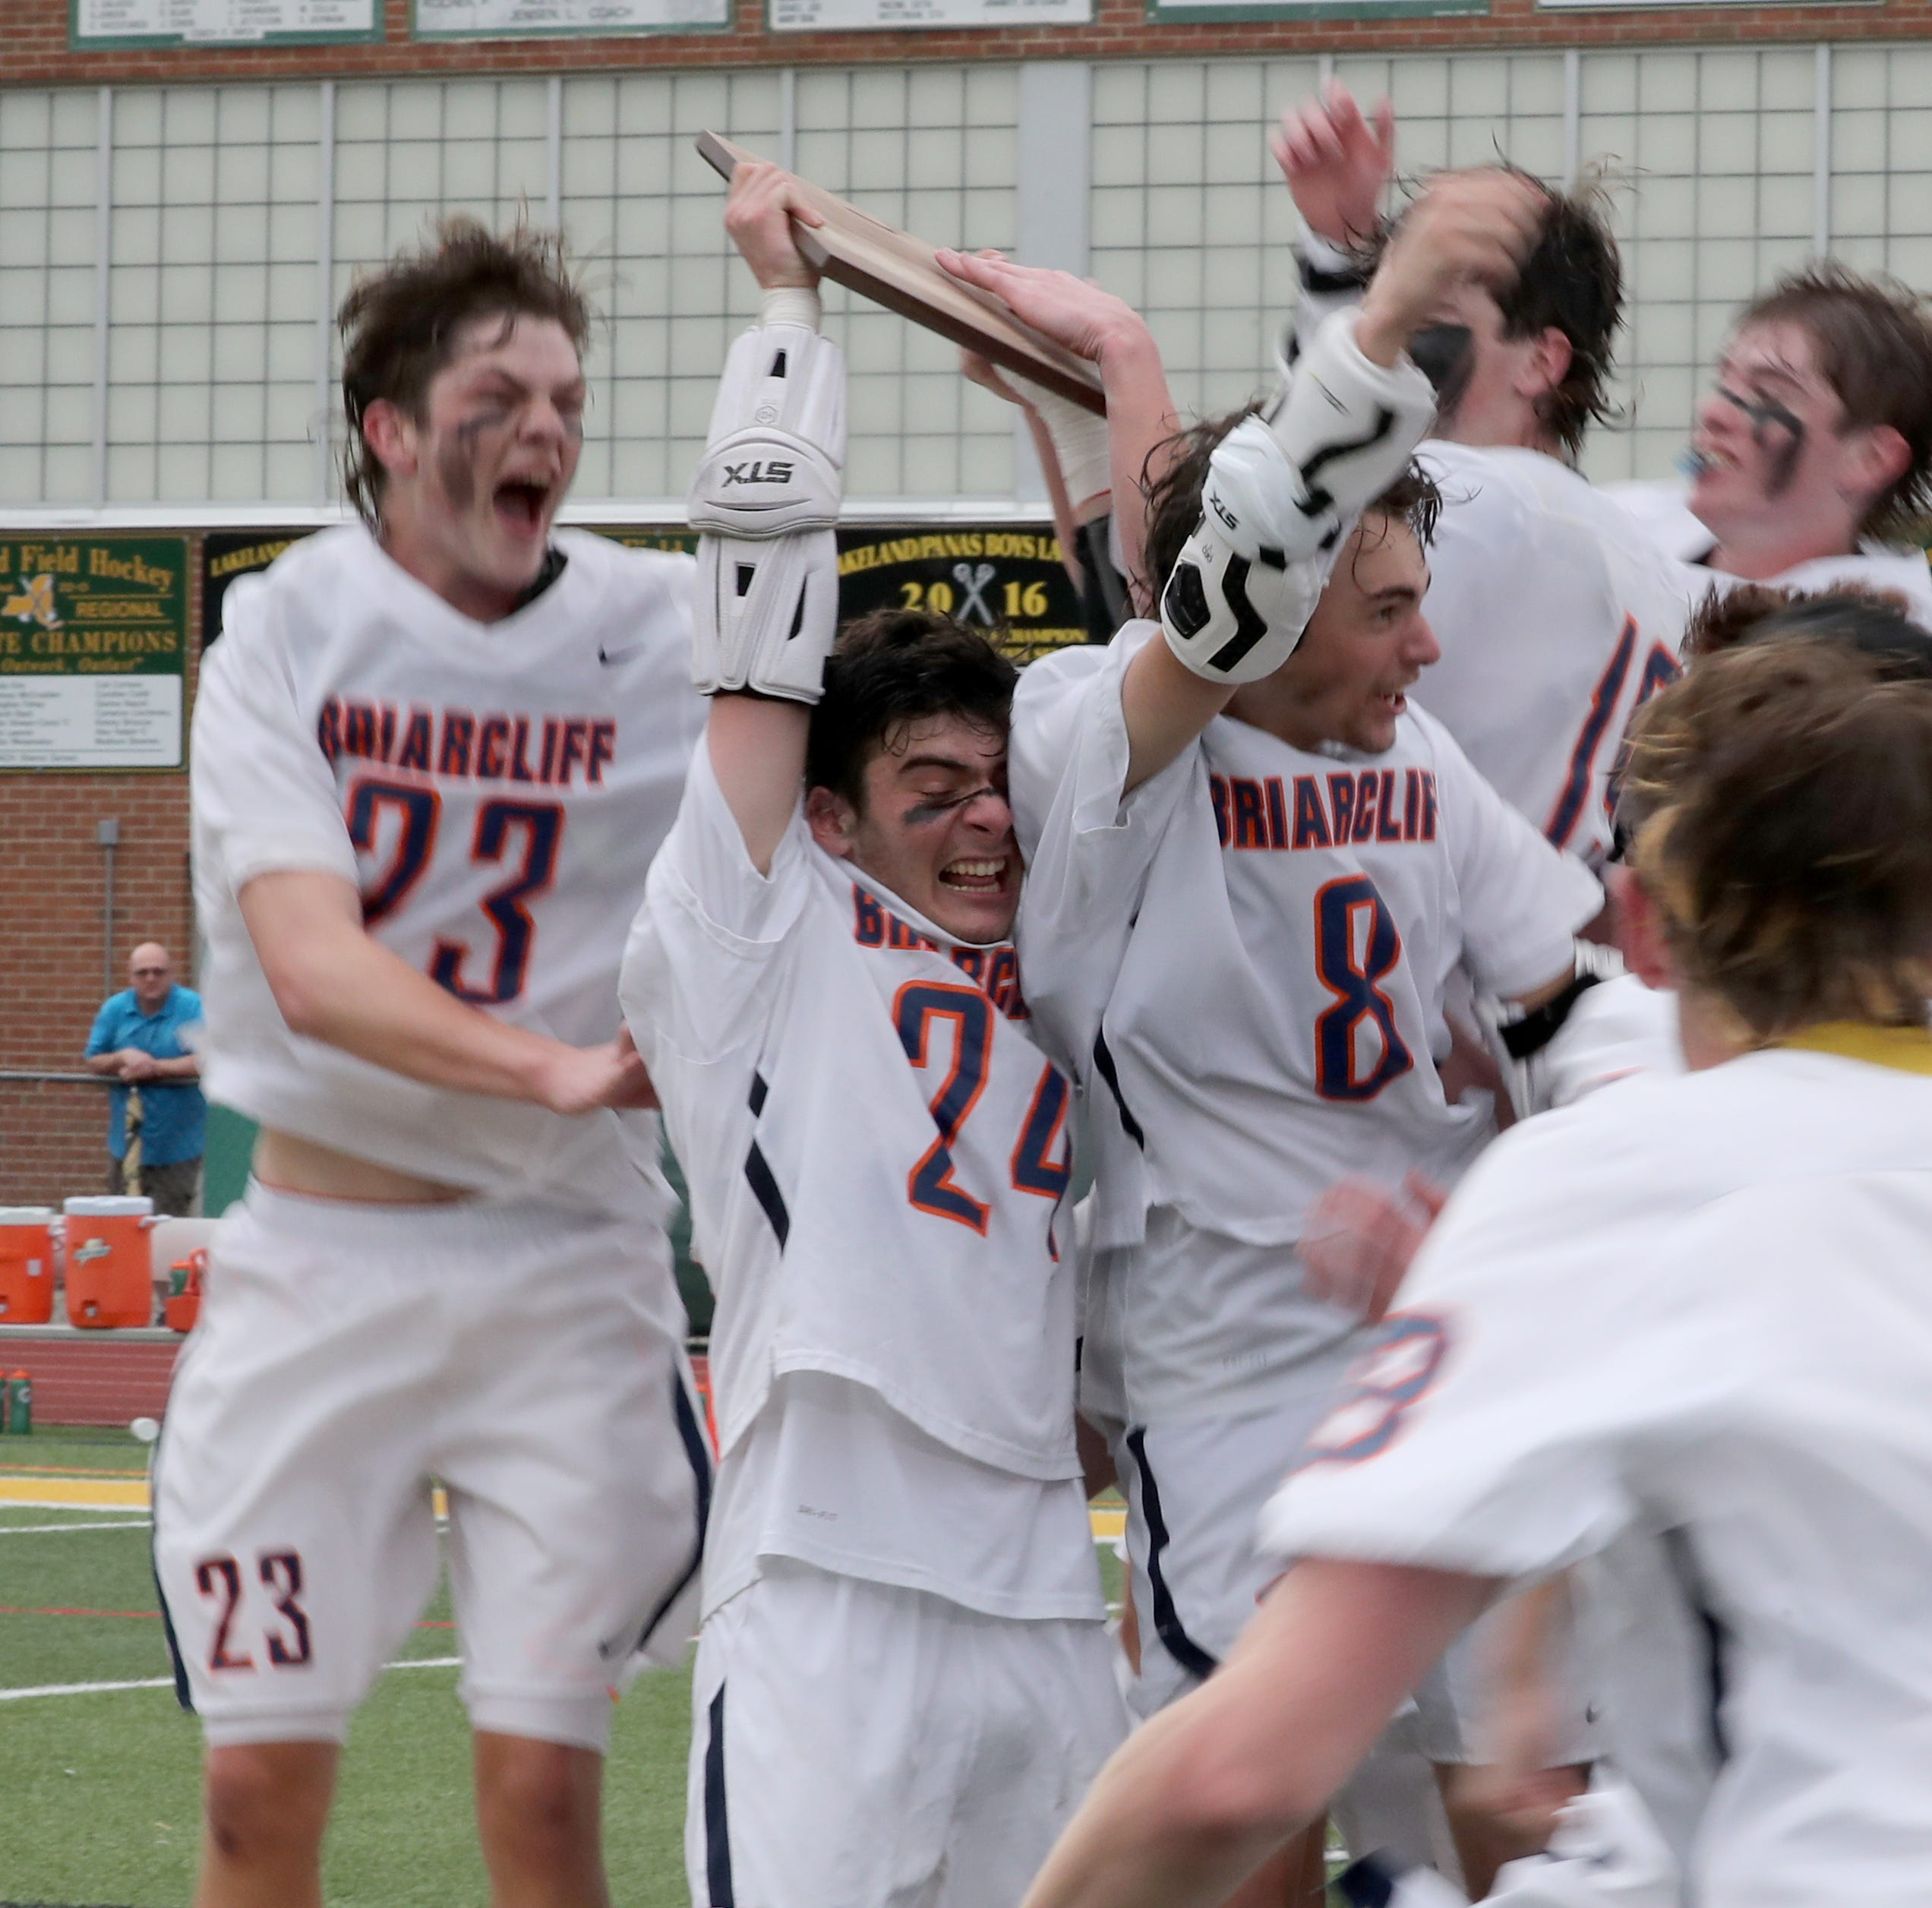 Boys lacrosse: Matt Waterhouse gives Briarcliff a historic overtime win